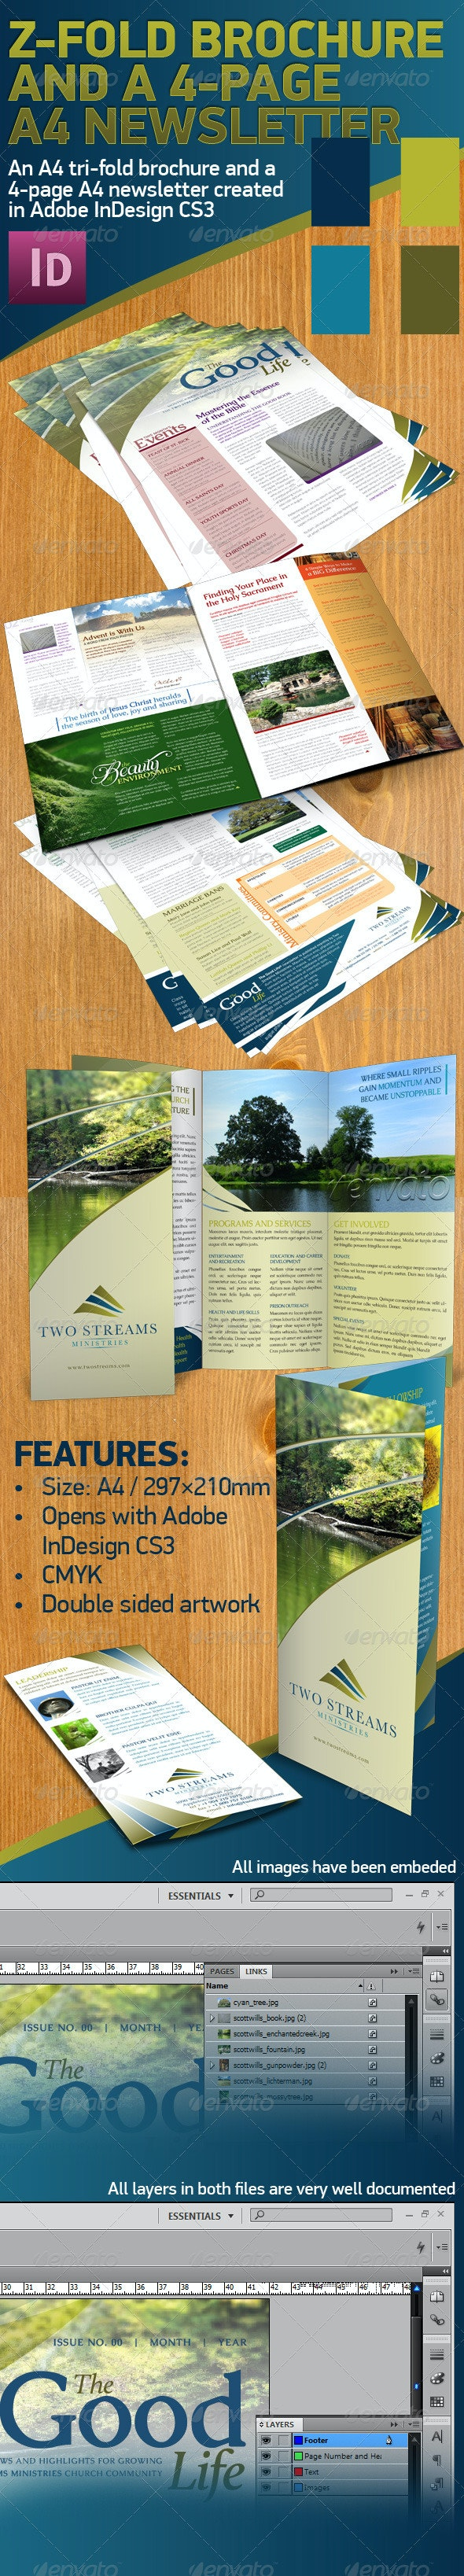 Tri-fold A4 Brochure and a 4-page A4 Newsletter - Corporate Brochures